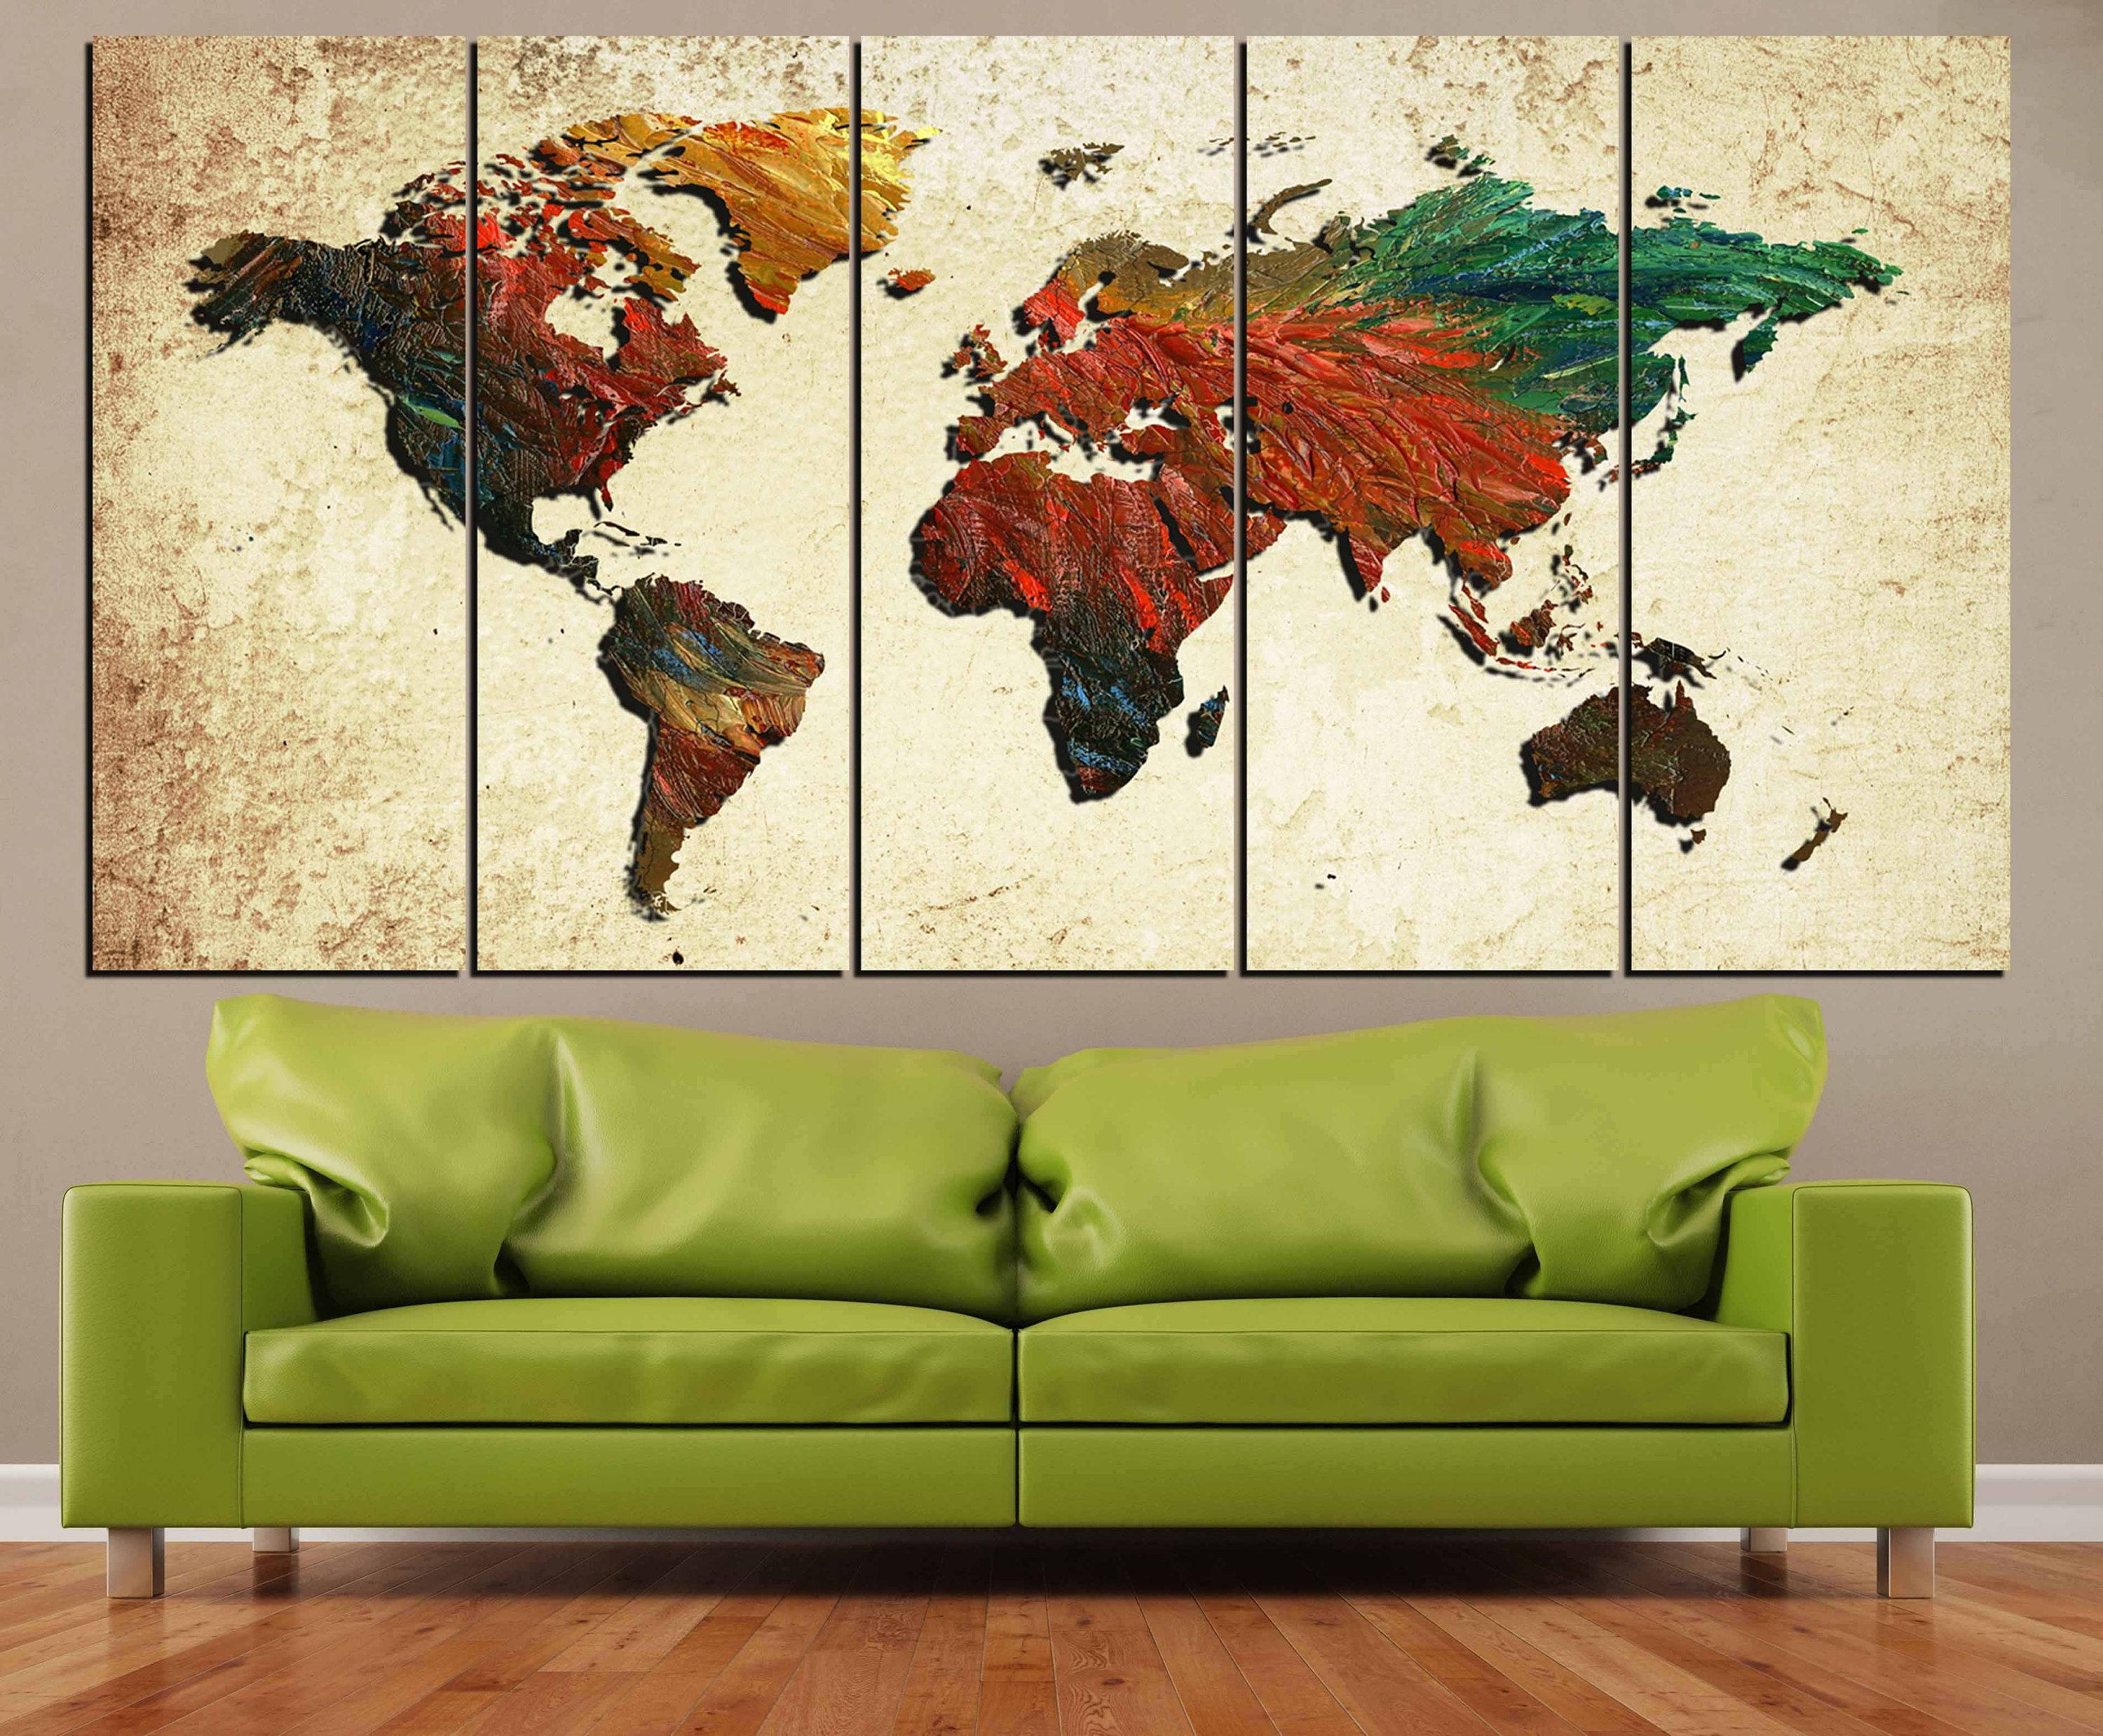 Large World Map,world Map, World Map Painting, Abstract Map Wall Intended For Most Up To Date World Map Wall Artwork (View 6 of 20)